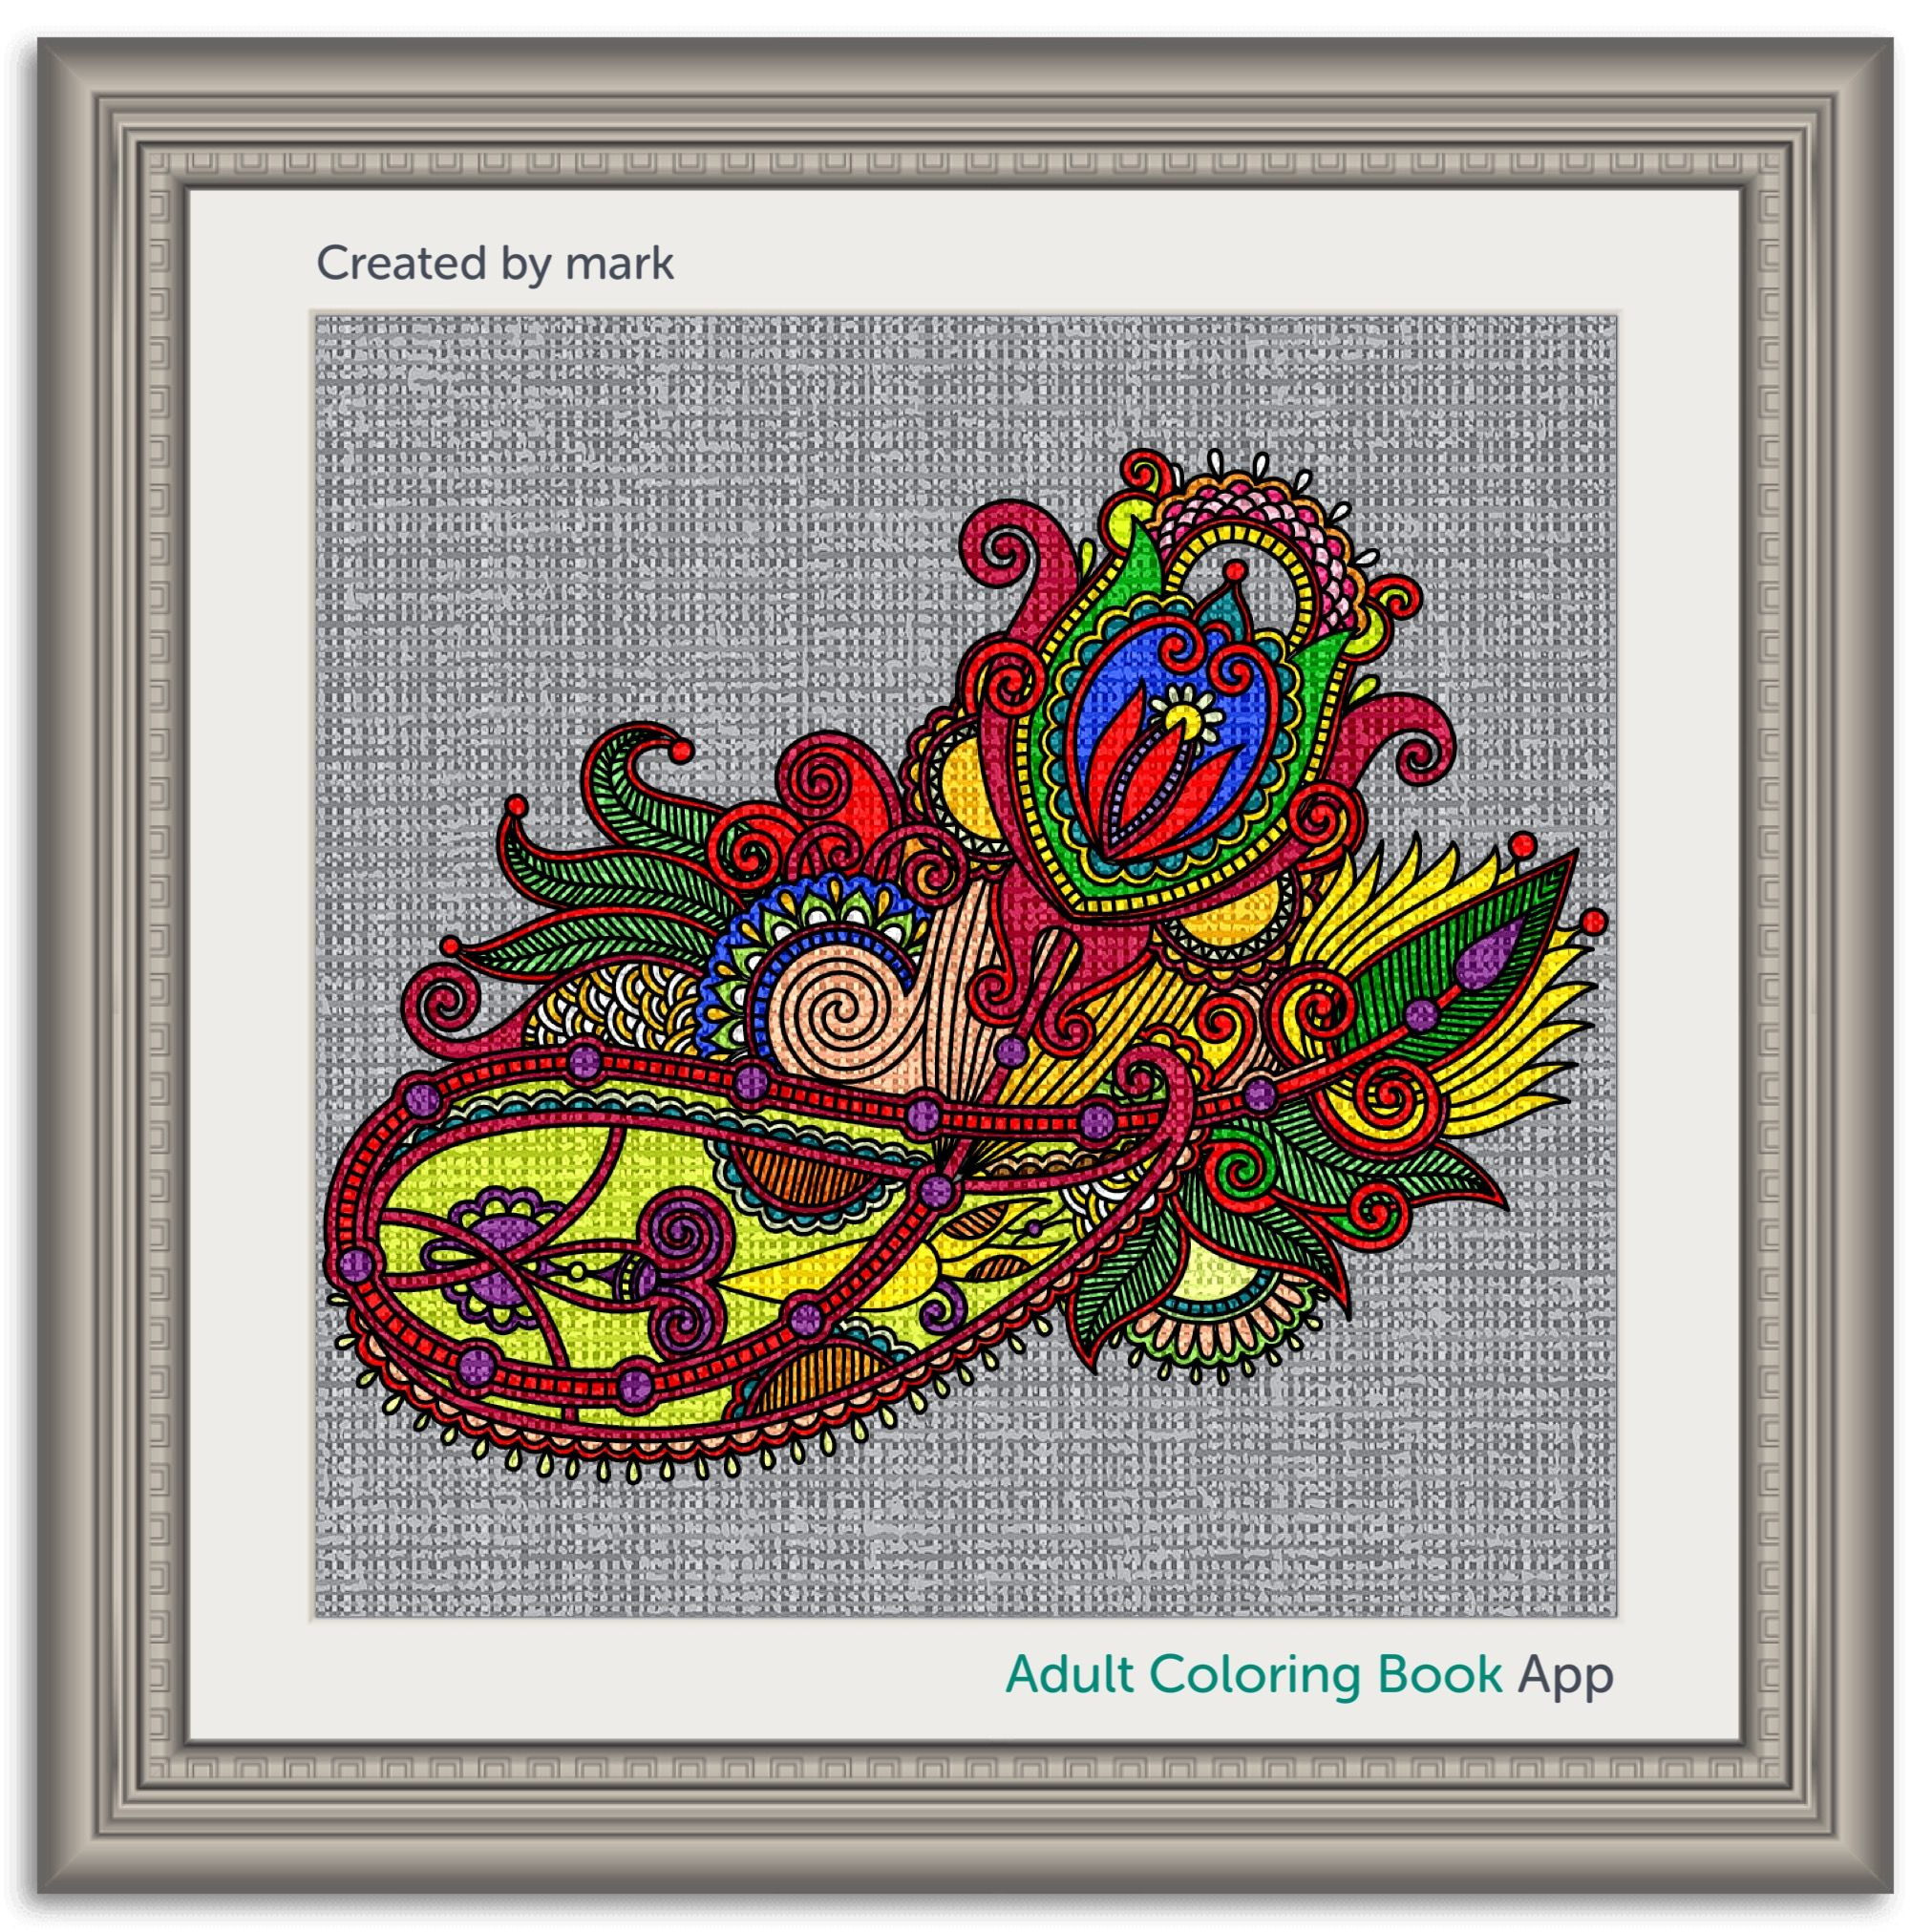 Pin By Mark Taylor On Art Work Coloring Book App Coloring Books